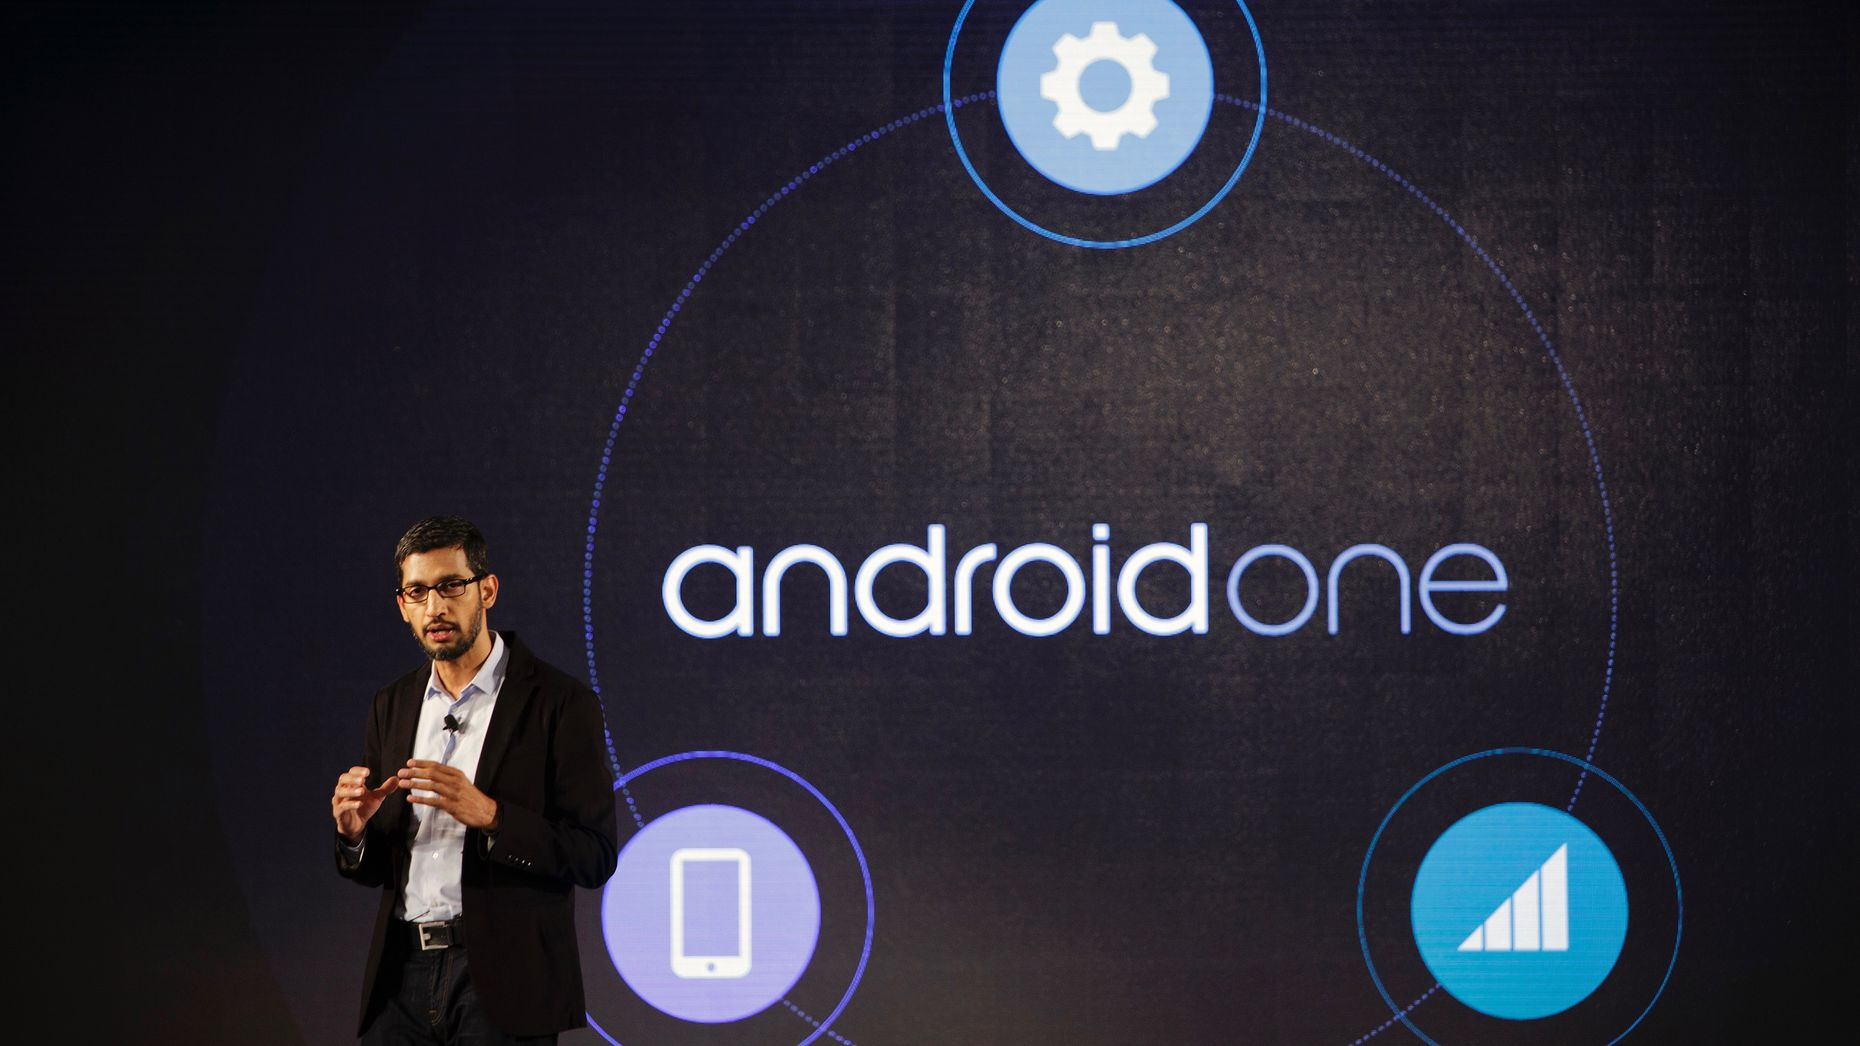 Google CEO Sundar Pichai launching Android One in India in 2014. Photo by Bloomberg.